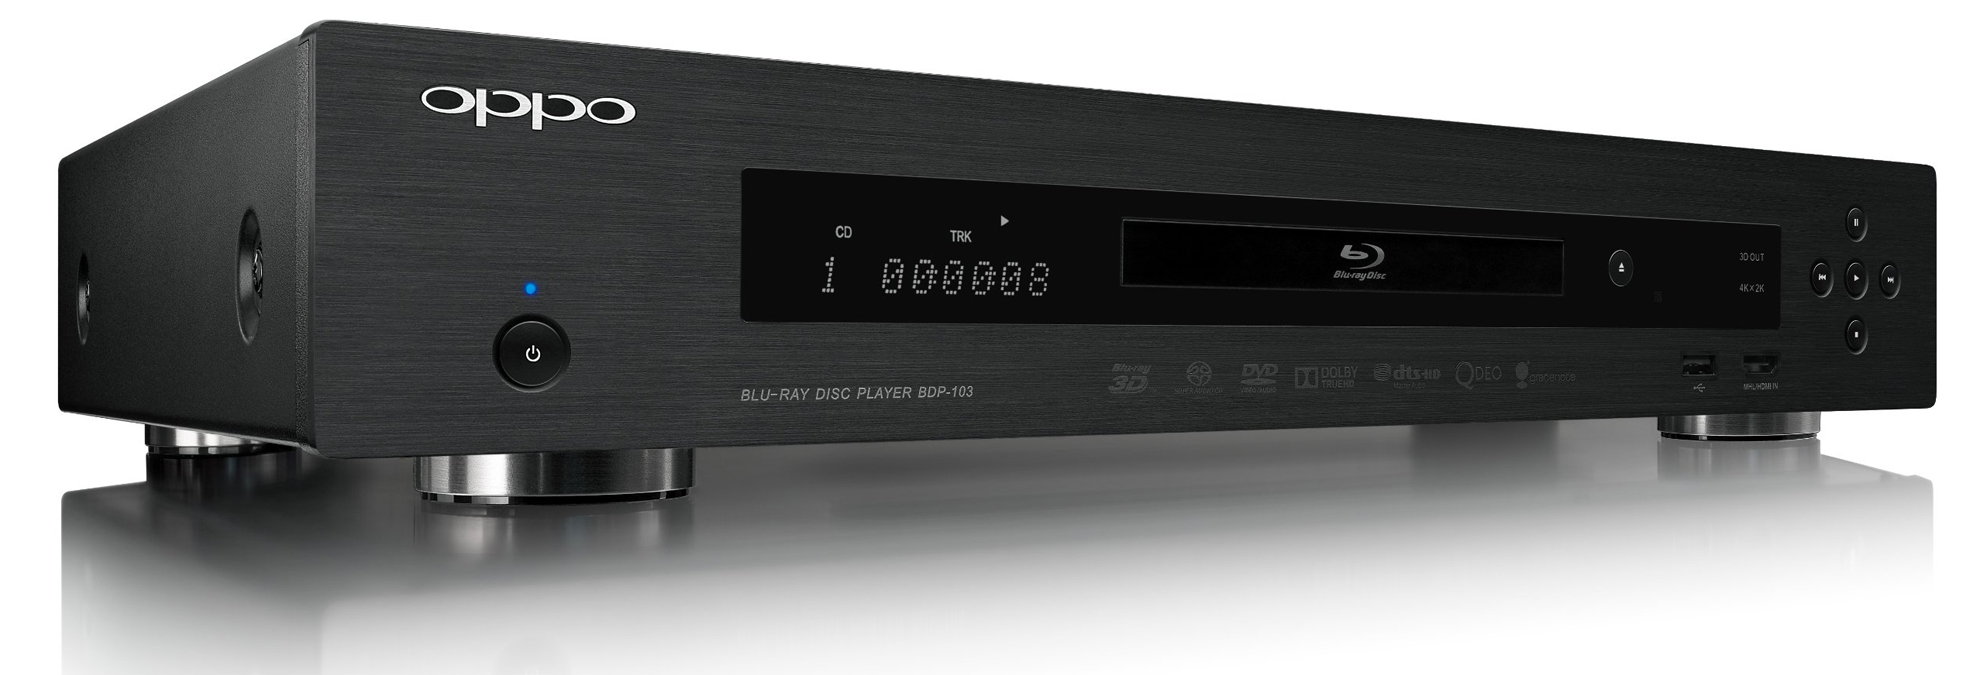 Best SACD Player - Top 4 Models to Consider for Audiophiles